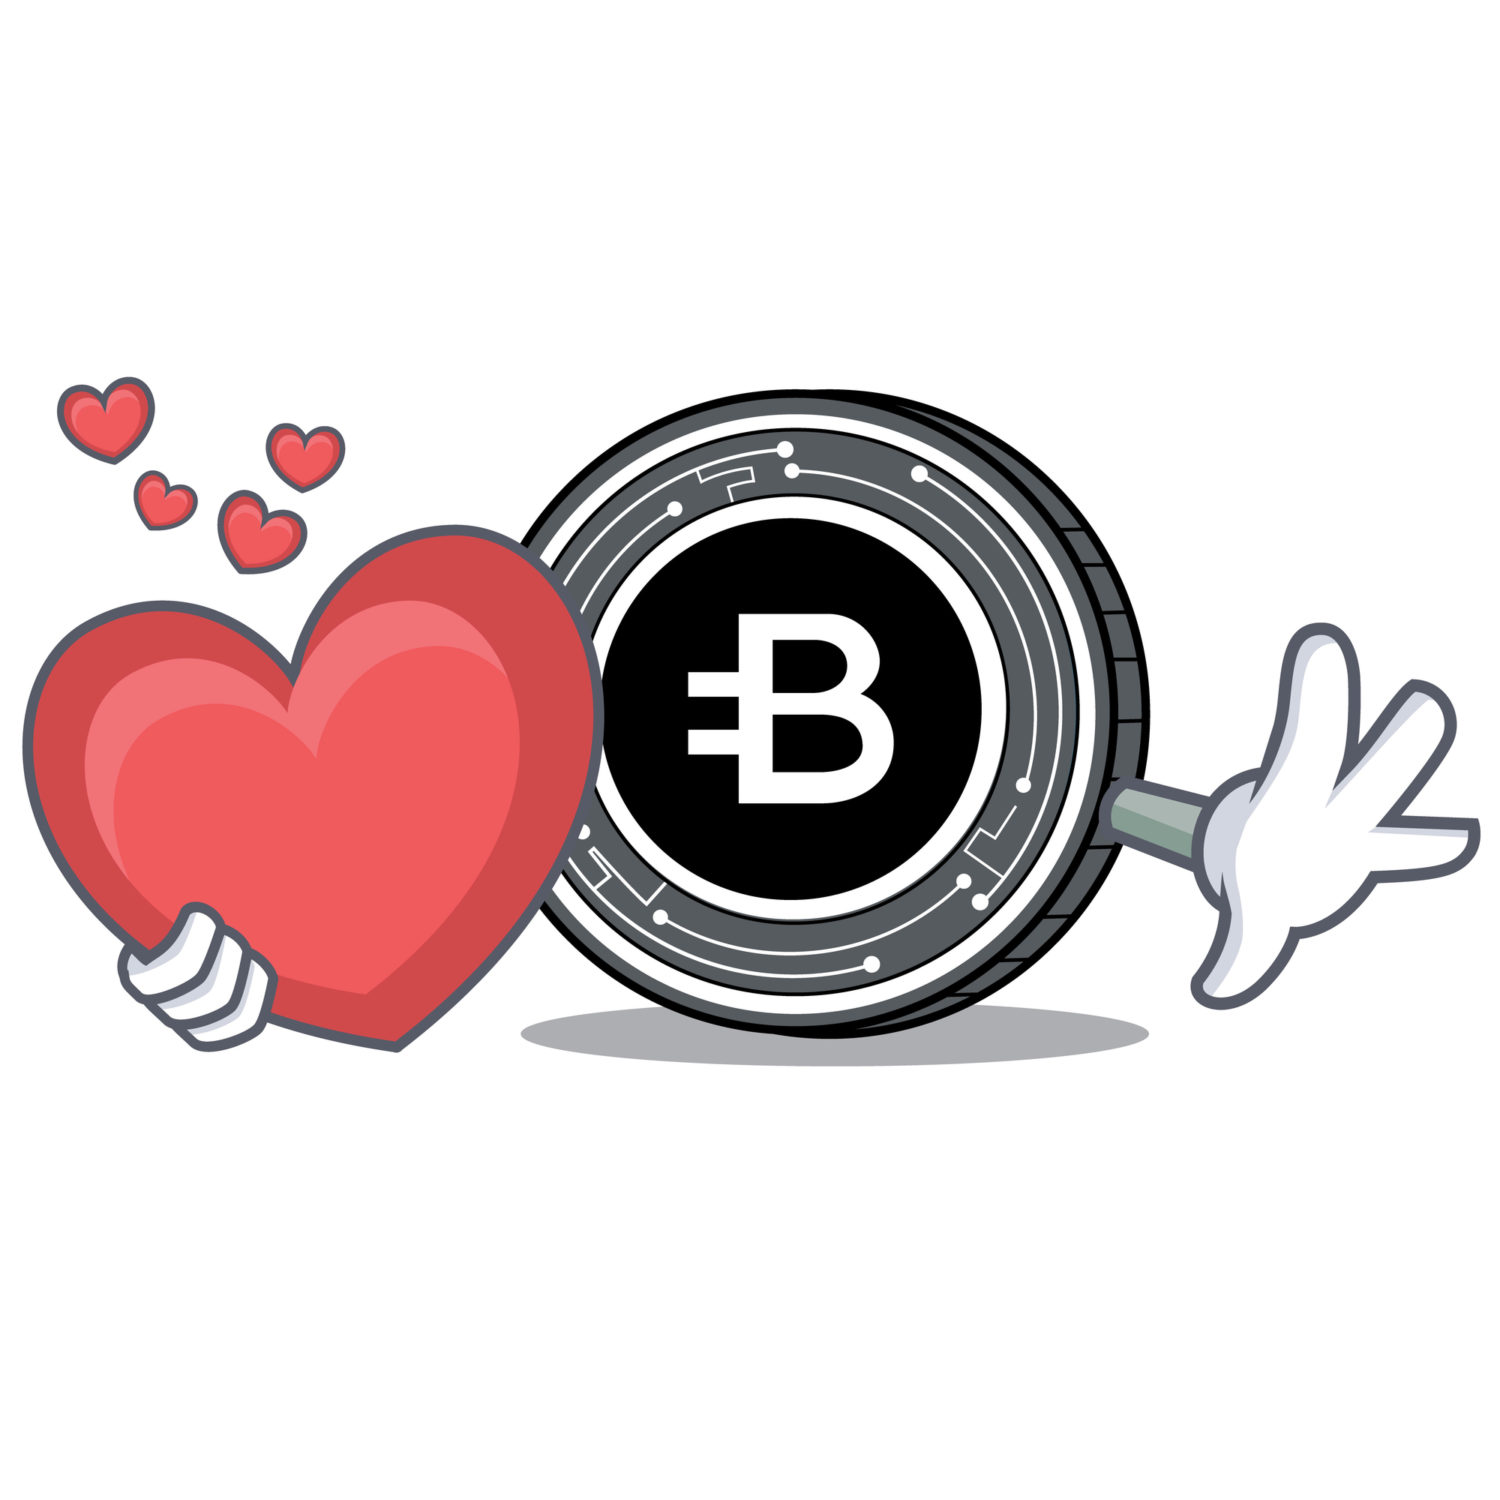 Don't have a valentine date? Tinder now accepts Bitcoin!